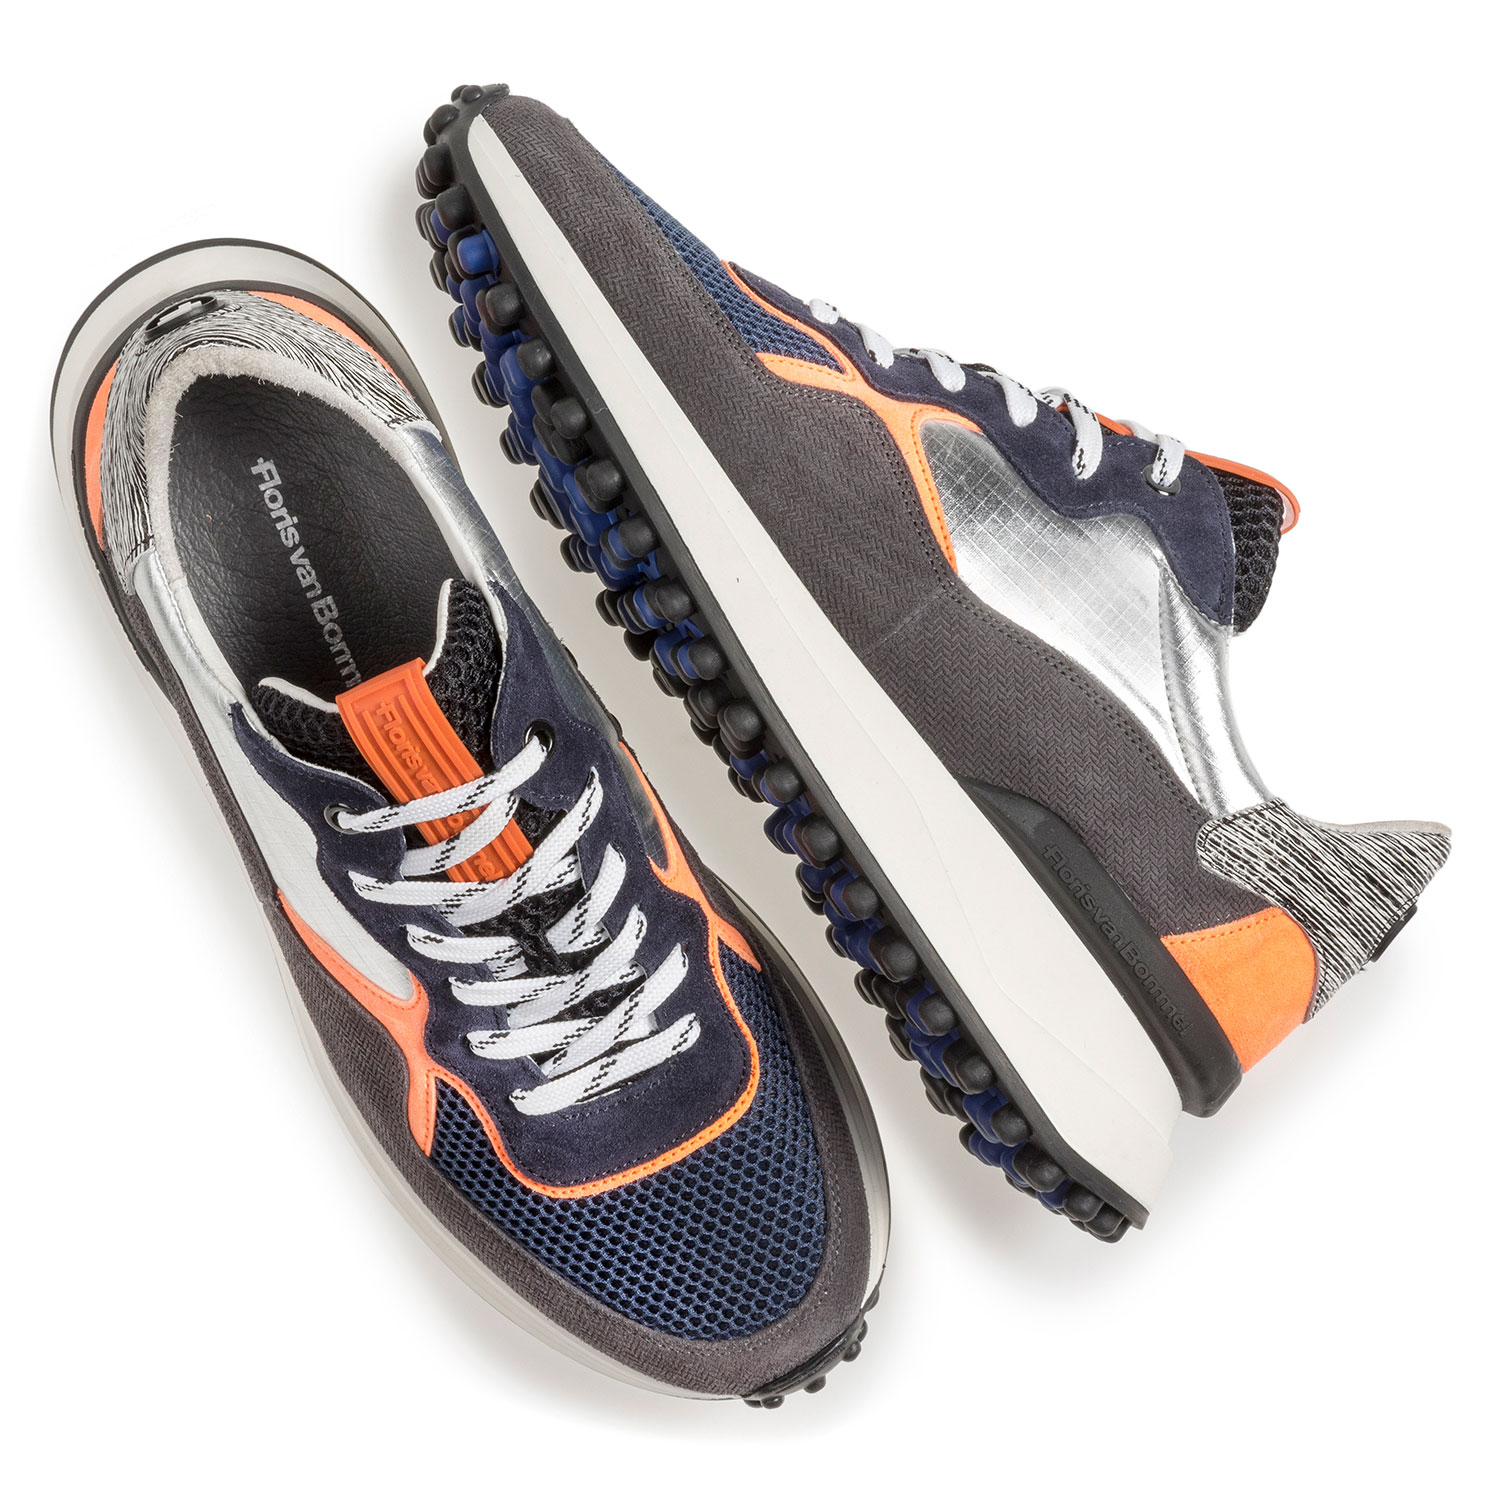 16301/20 - Suede leather sneaker with orange details